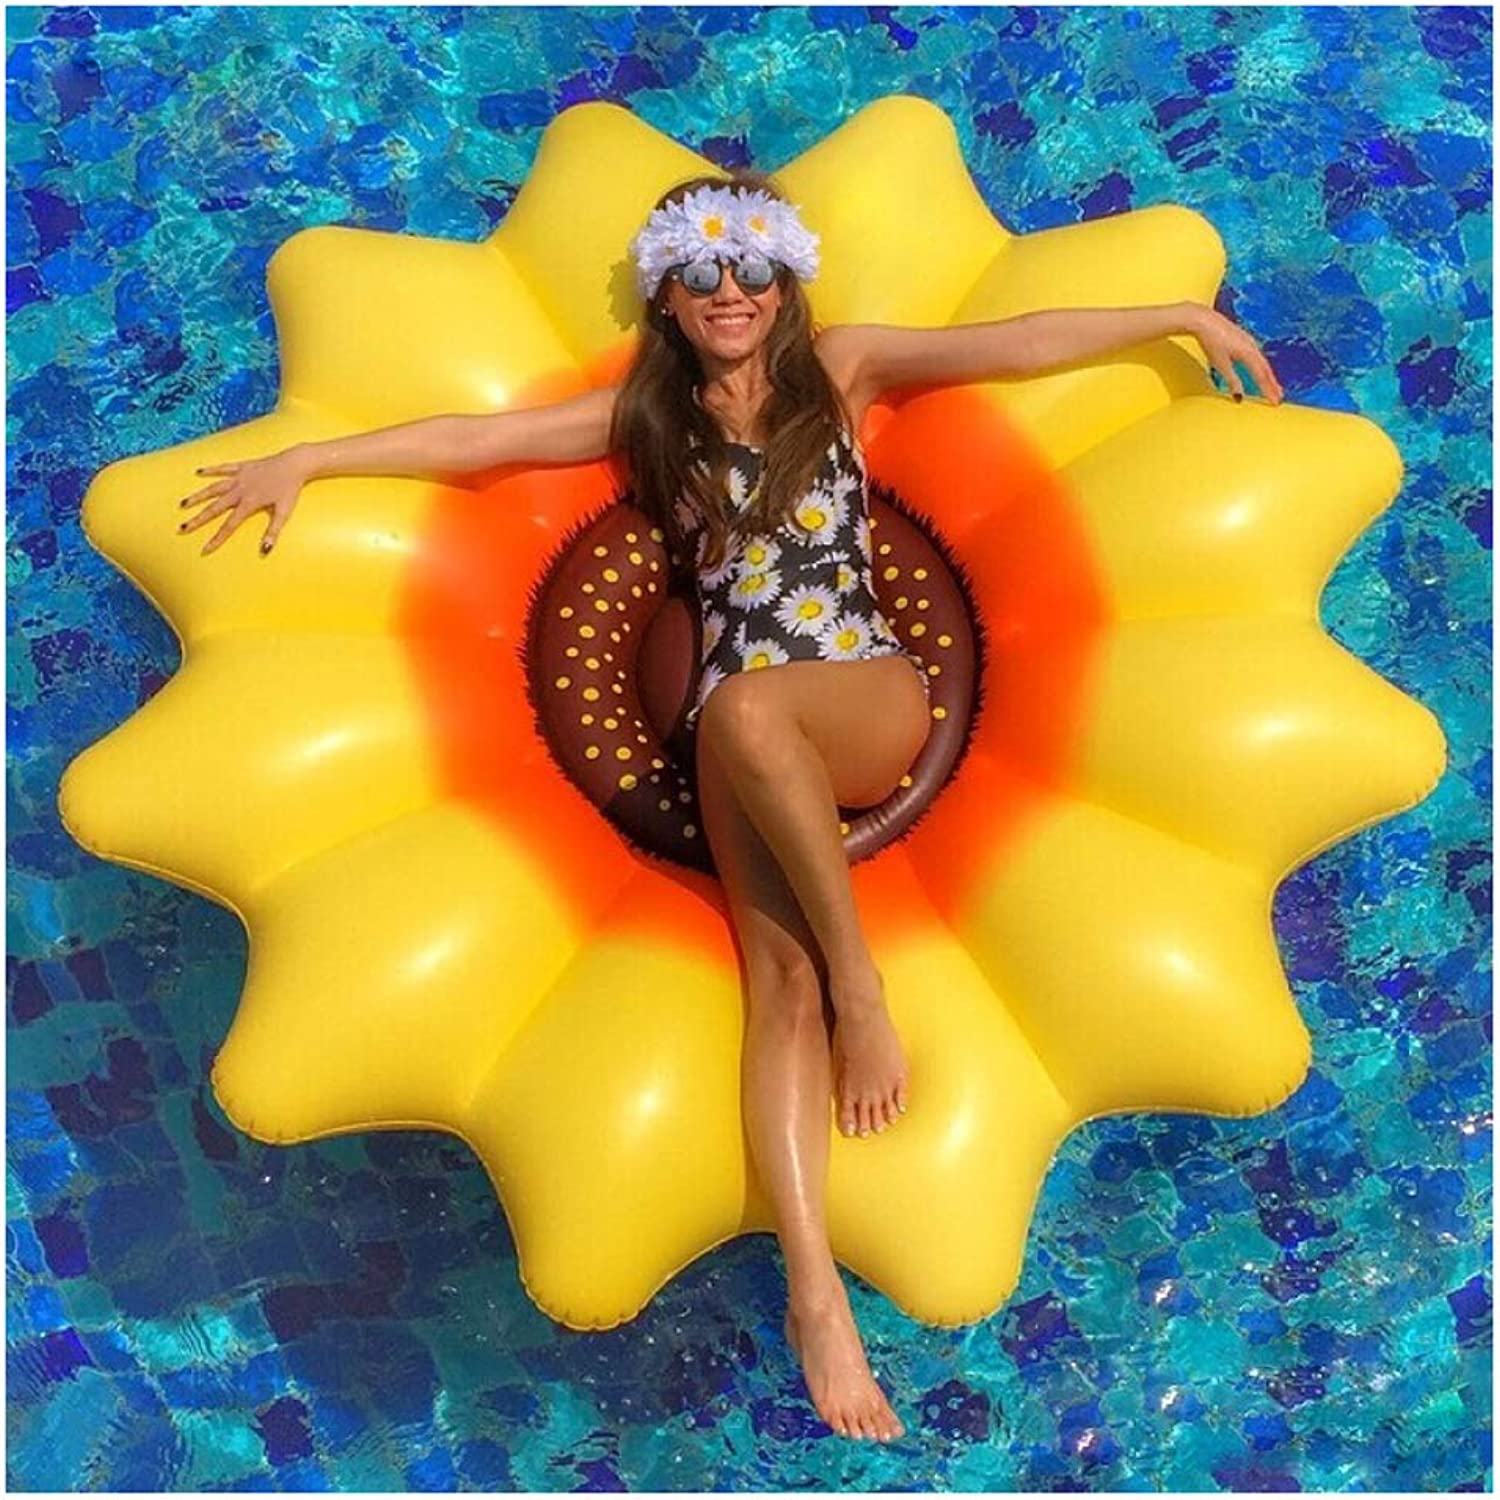 OToys Swimming Pool Floats for Adults Sunflower Inflatable Pool Lounger Outdoor Large Water Raft Summer Pool Island Fun Beach Floats Swim Party Toys